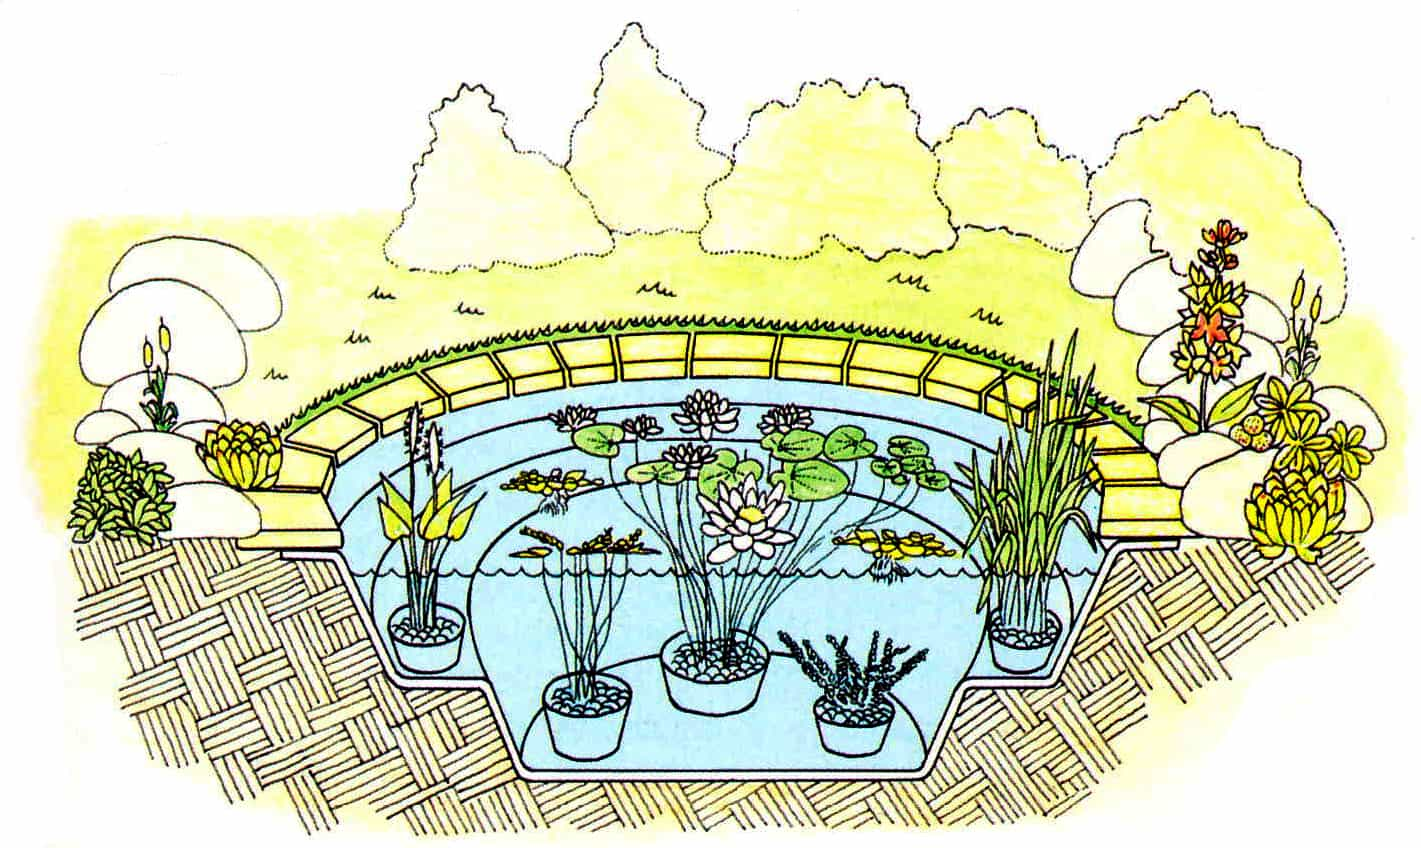 12 Pond plant life - How To Finish Off Your Pond